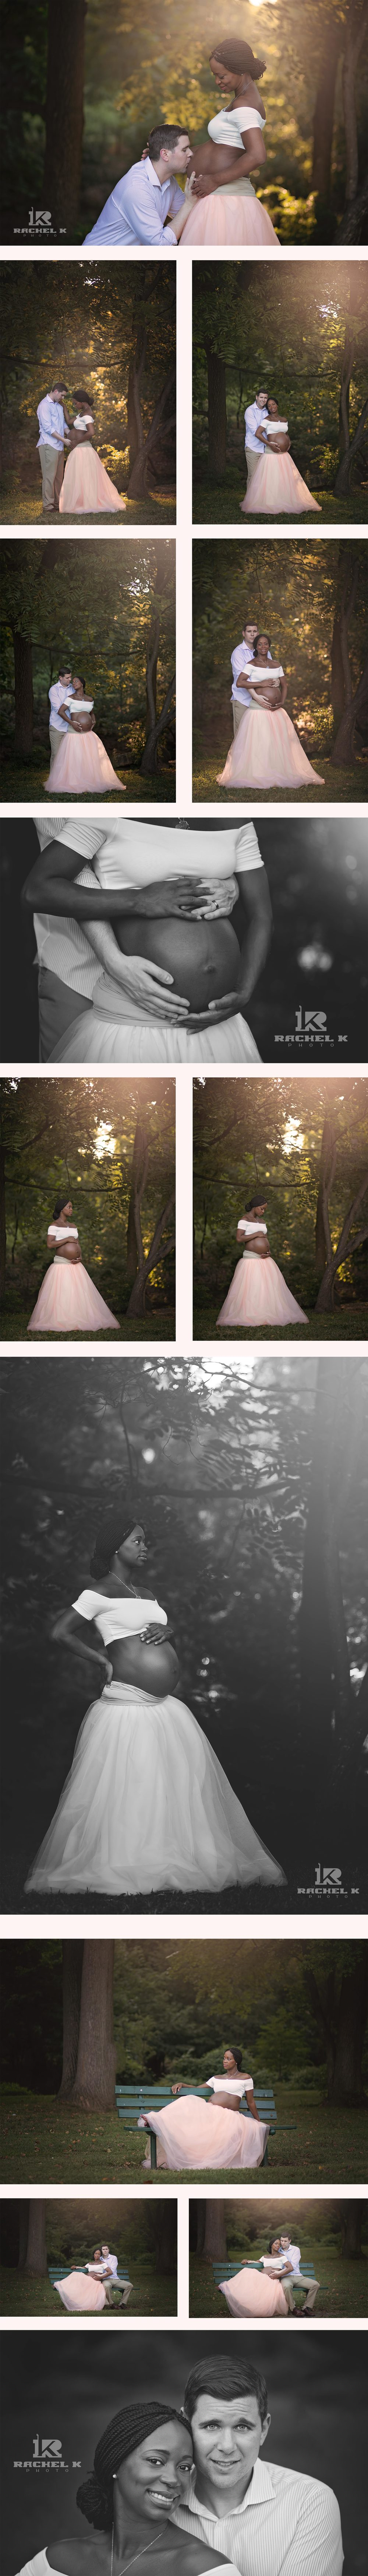 Tulle skirt maternity session by Rachel K Photo